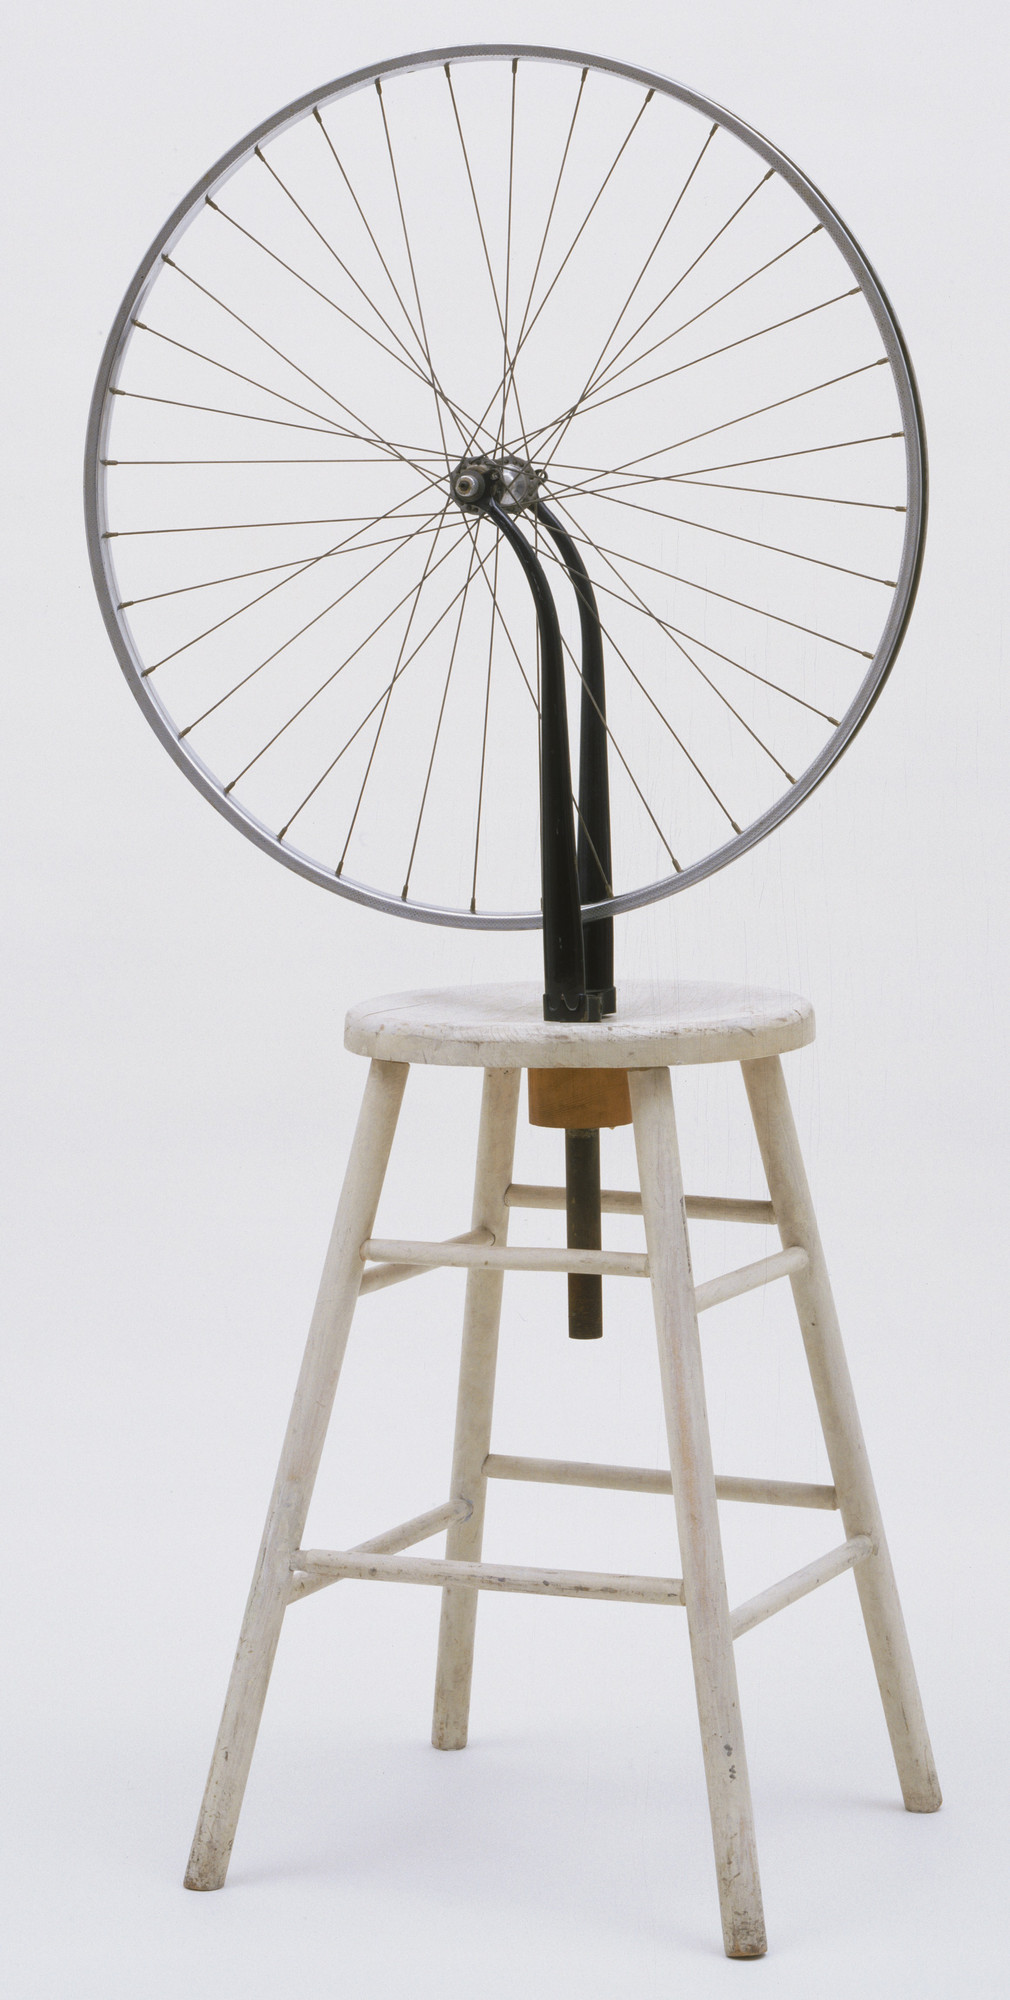 Image result for Bicycle Wheel, Duchamp